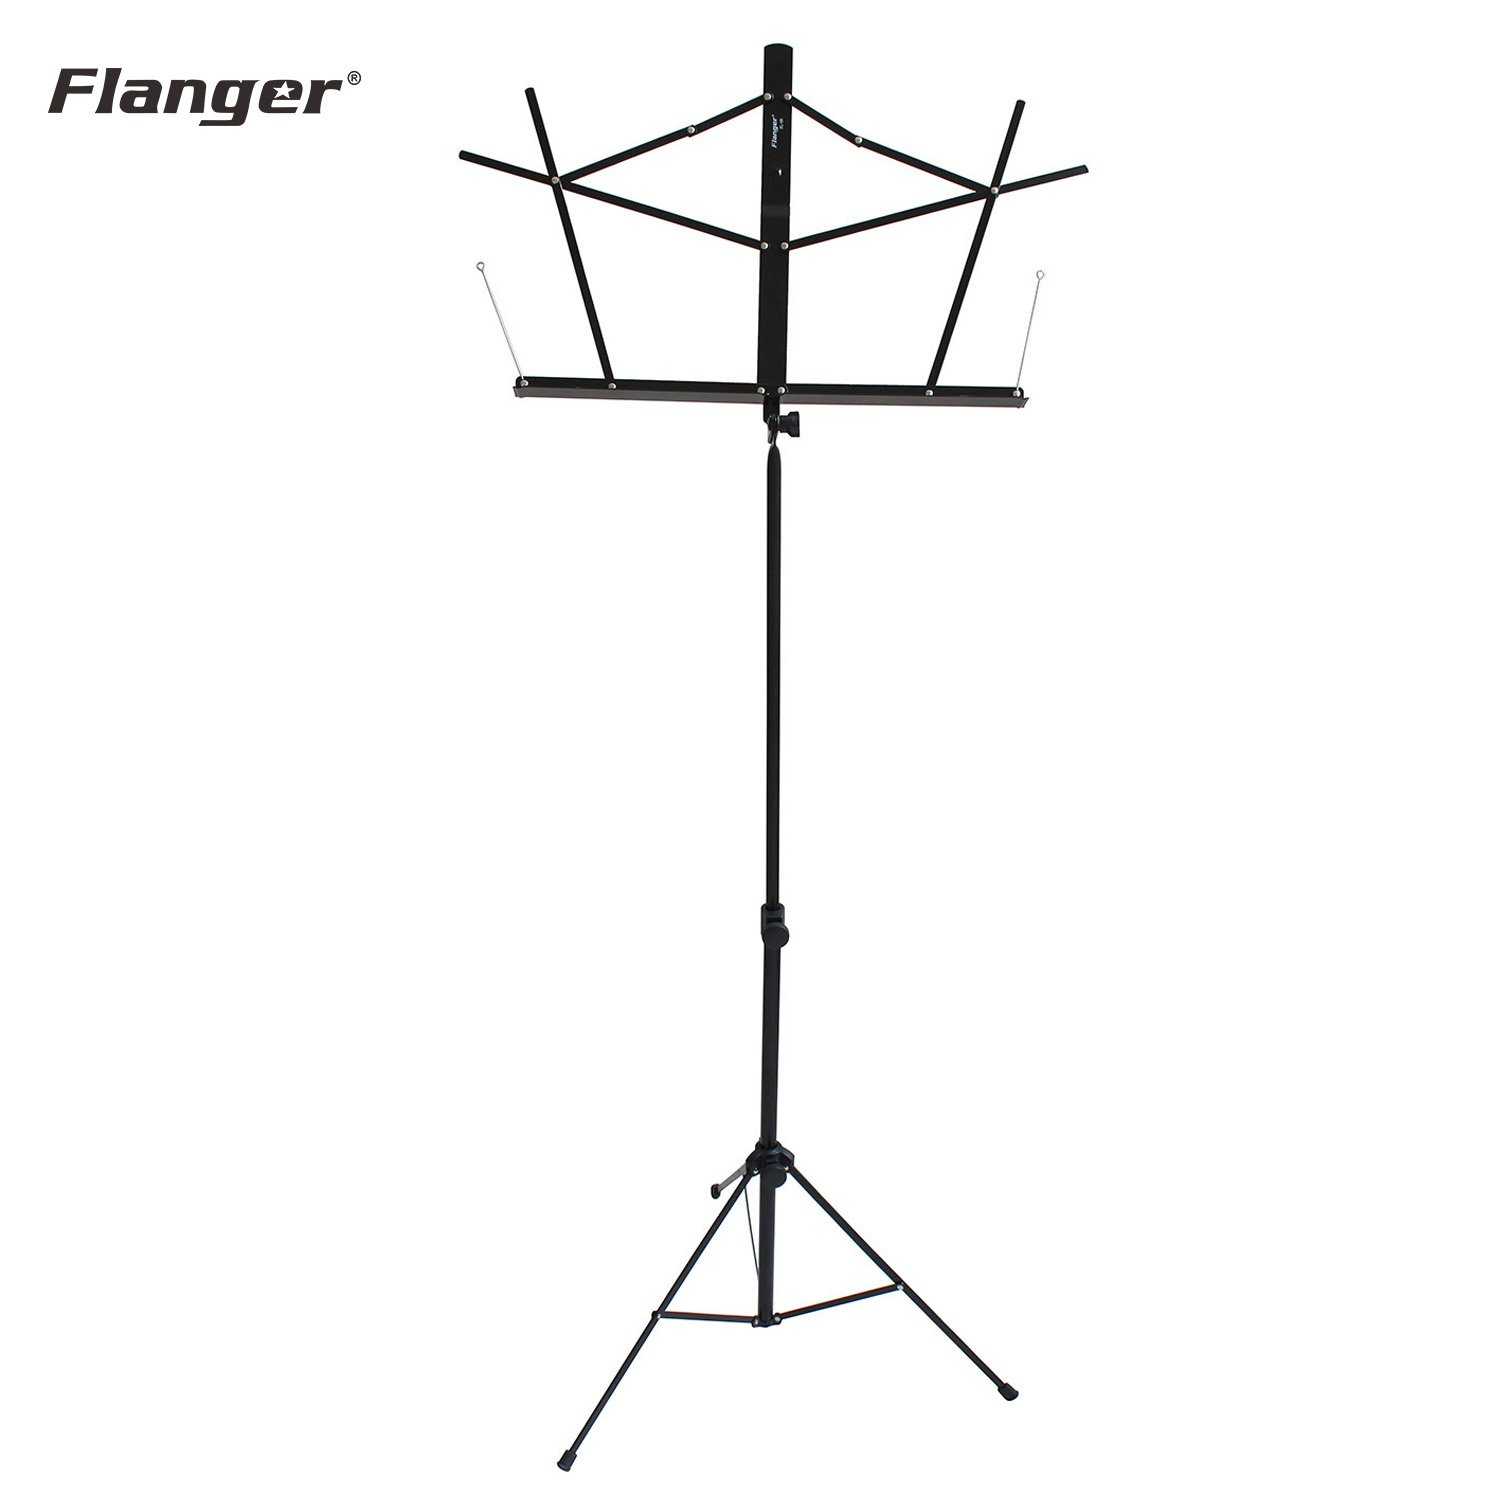 Flanger Fl-09 Black Folding Music Stand For Sheet Music With Carry Bag, 1 Pack